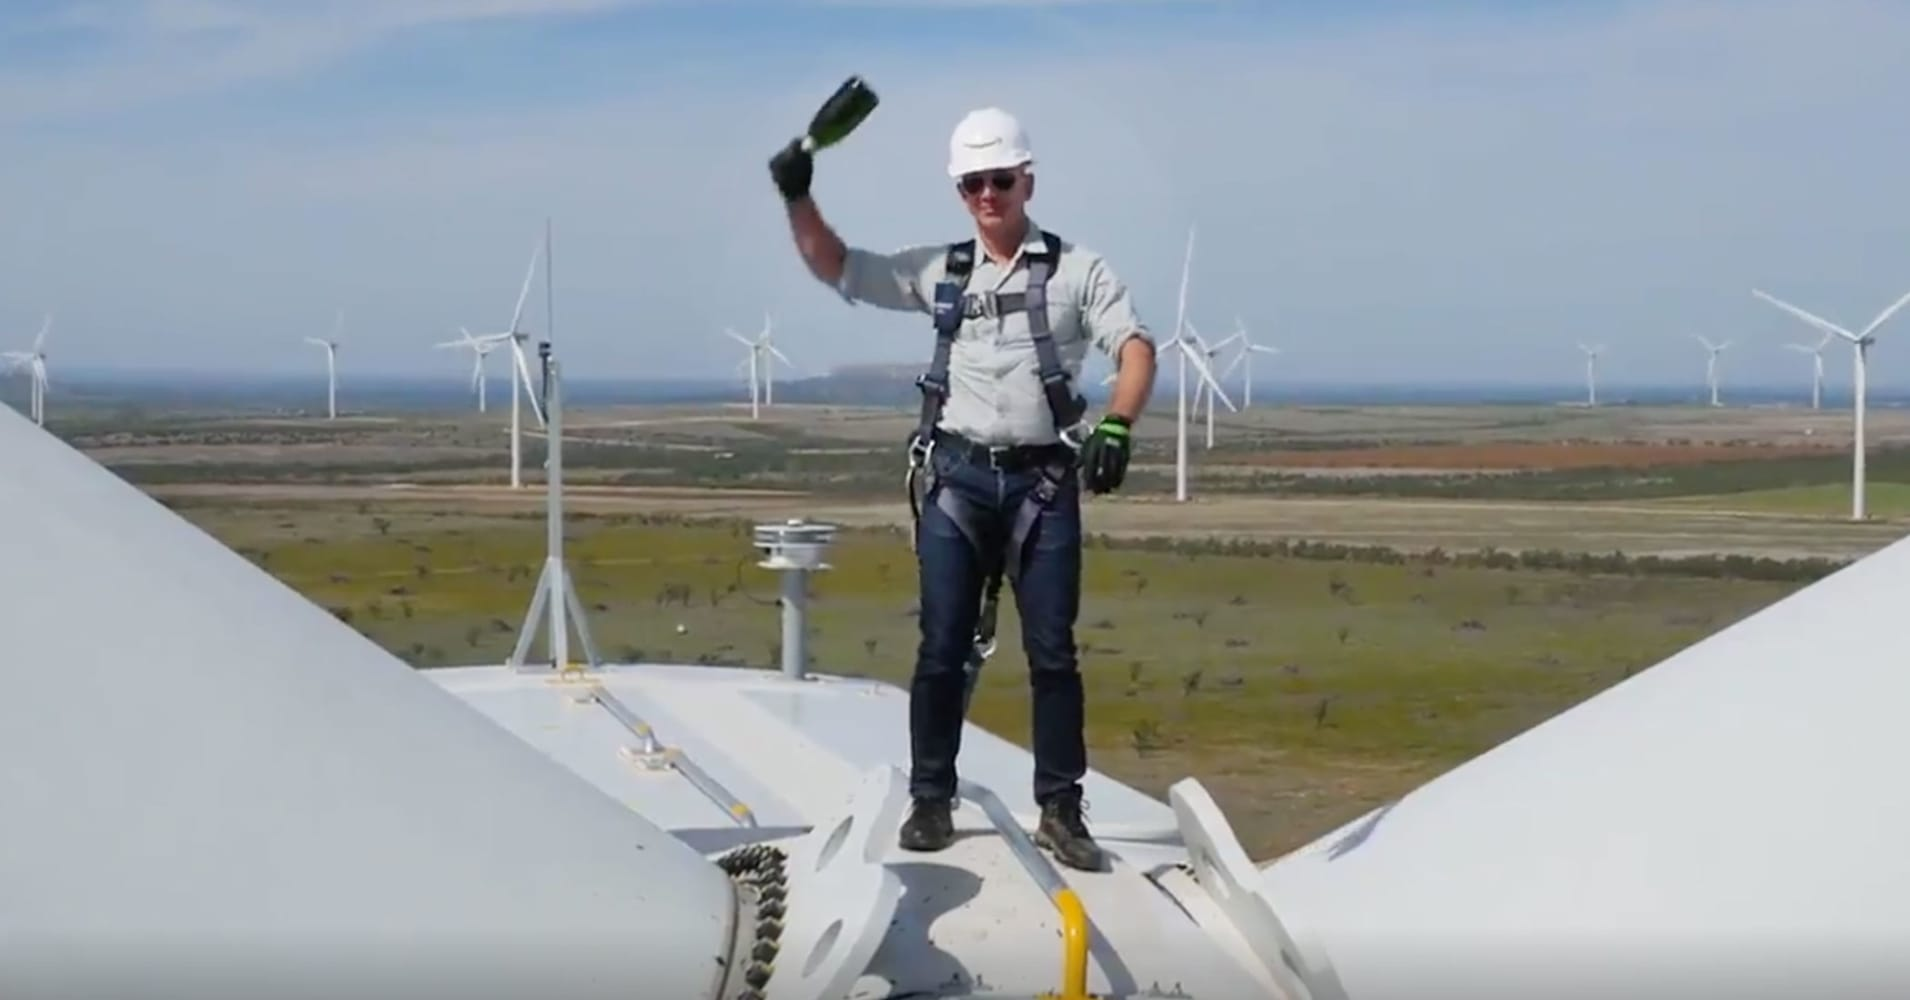 In a still from a video, Jeff Bezos christening Amazon's new wind farm.